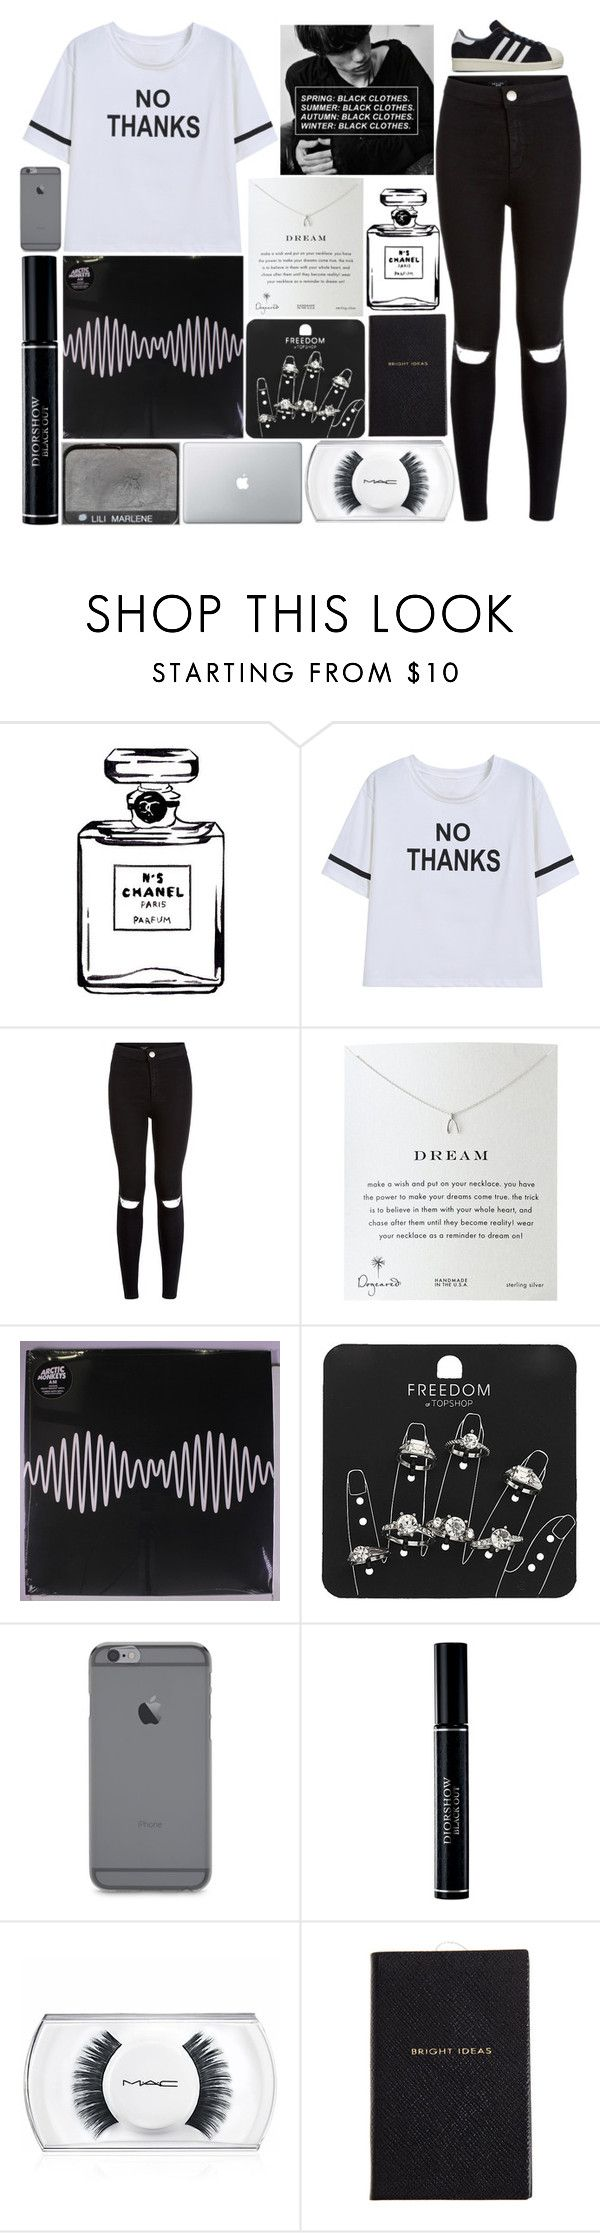 """""""100 Day Challenge: Day 43-Q&A video"""" by piksist ❤ liked on Polyvore featuring Chanel, NARS Cosmetics, Dogeared, Topshop, Christian Dior, MAC Cosmetics, Smythson and adidas"""